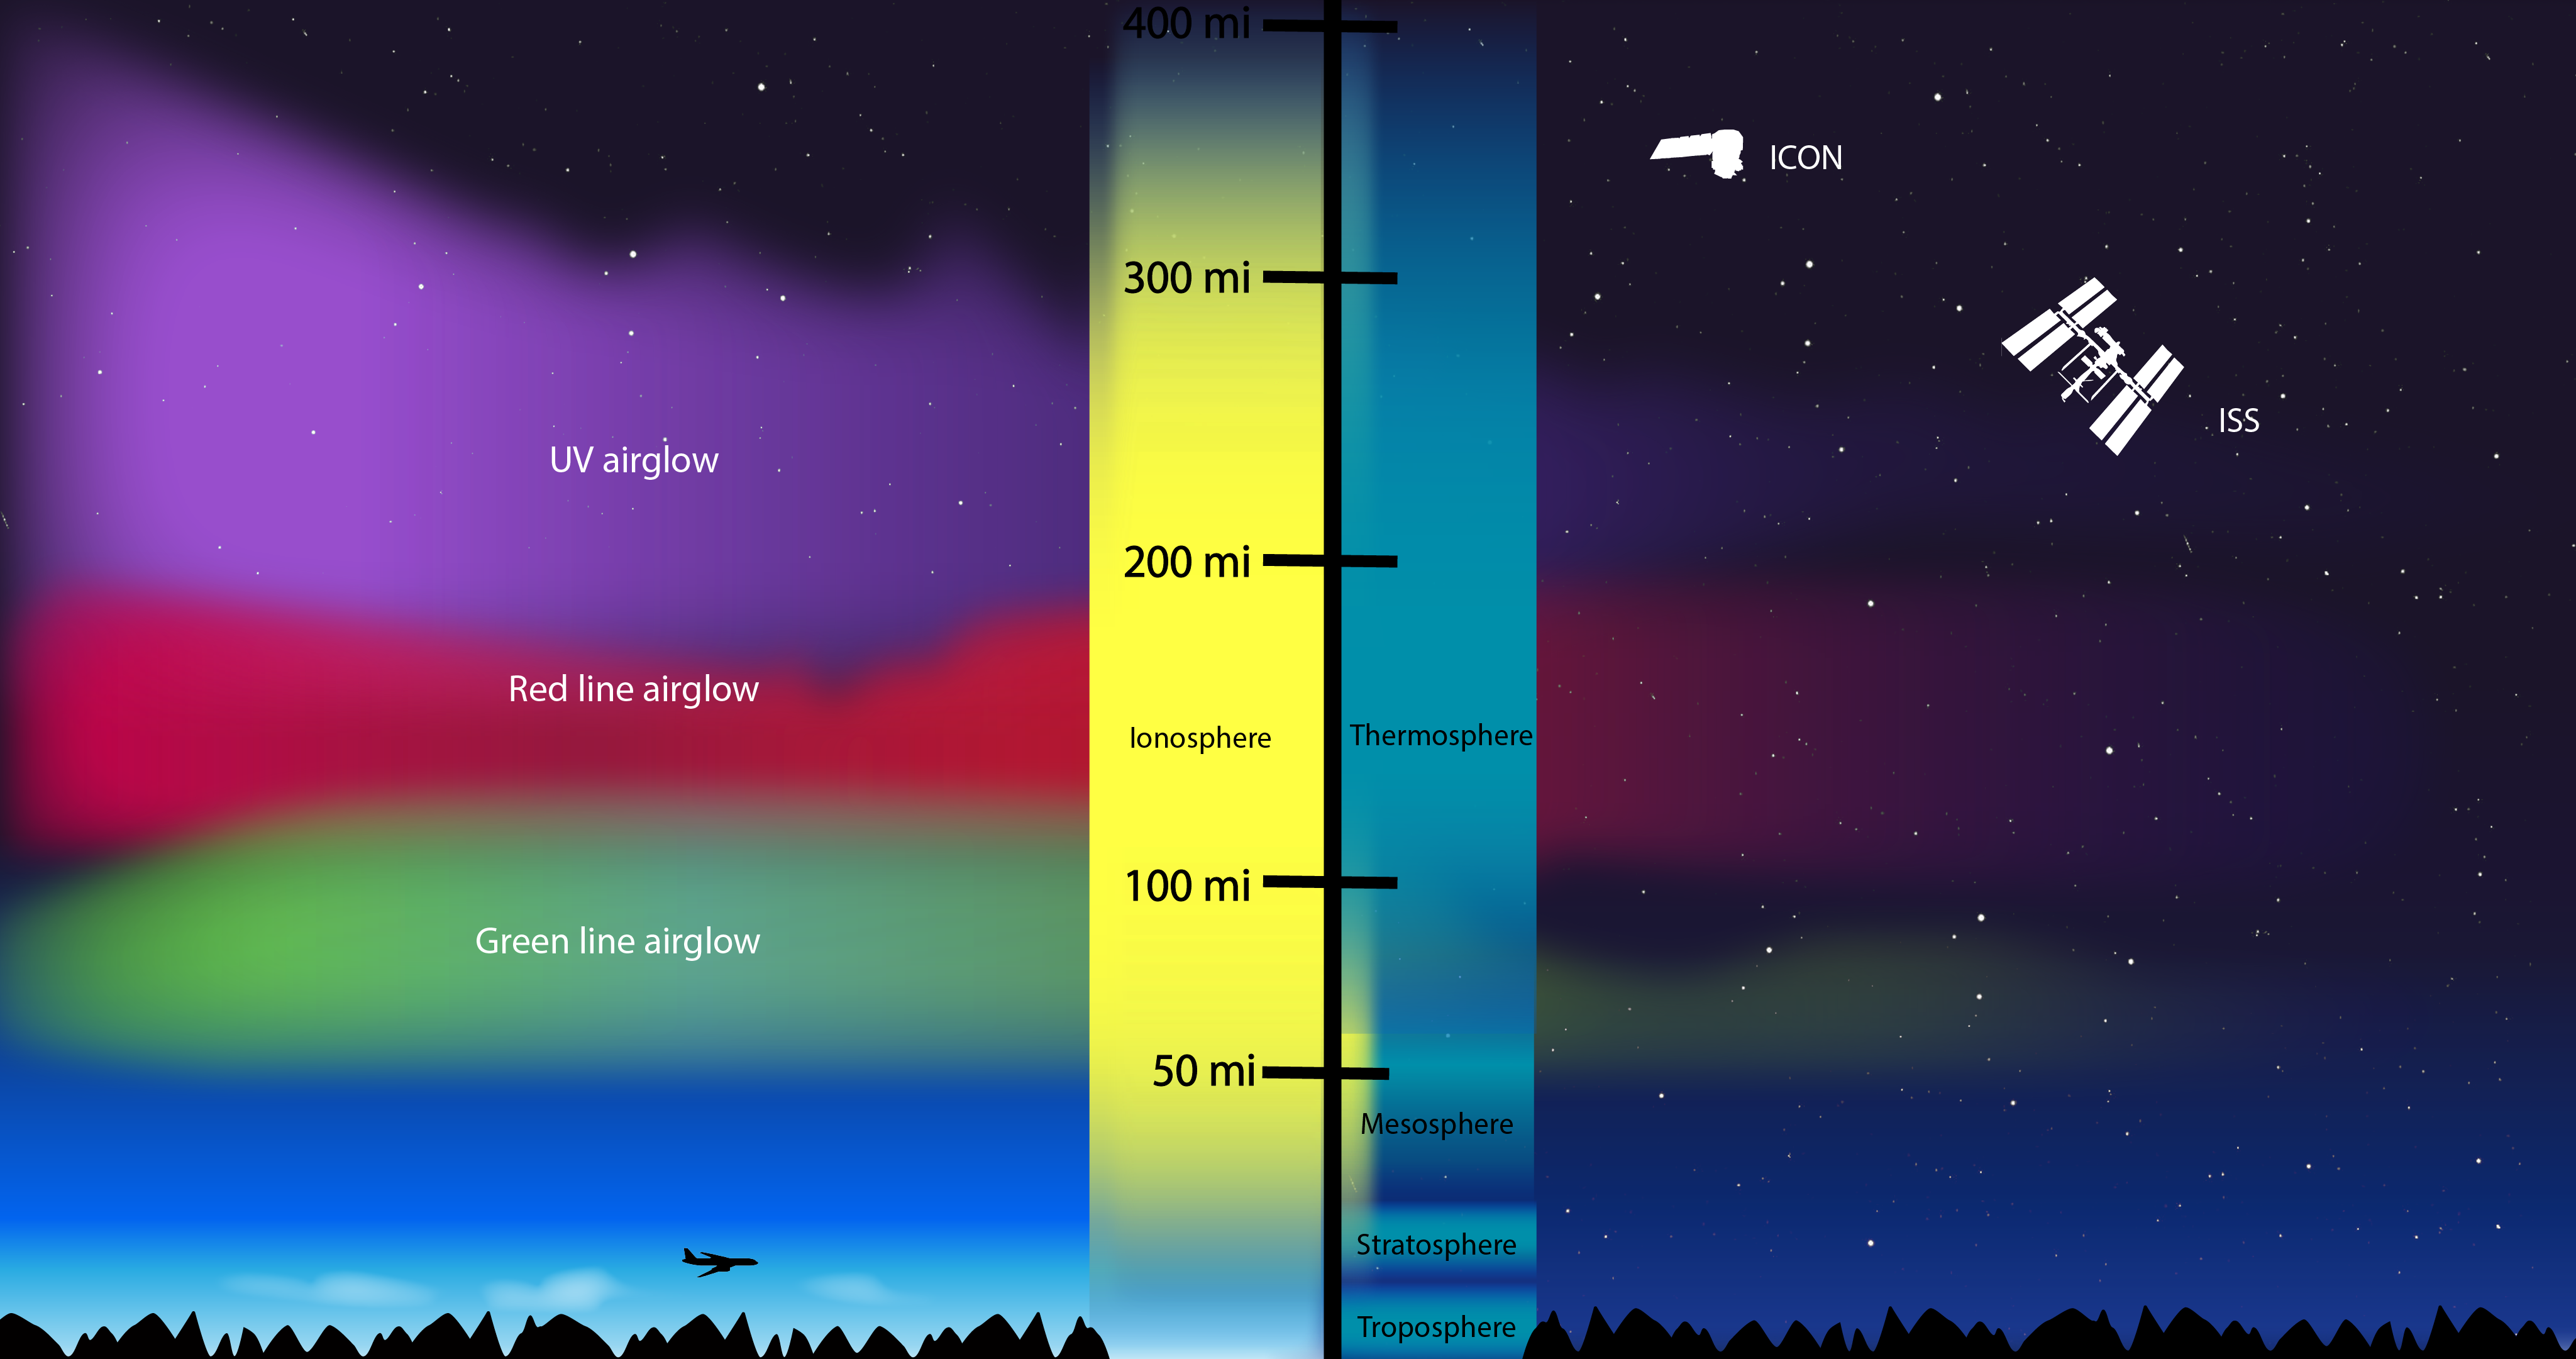 Nasas Icon Explores The Boundary Between Earth And Space Nasa 2 Way Switch Informational Graphic Showing Cross Section Of Earths Atmospheric Layers